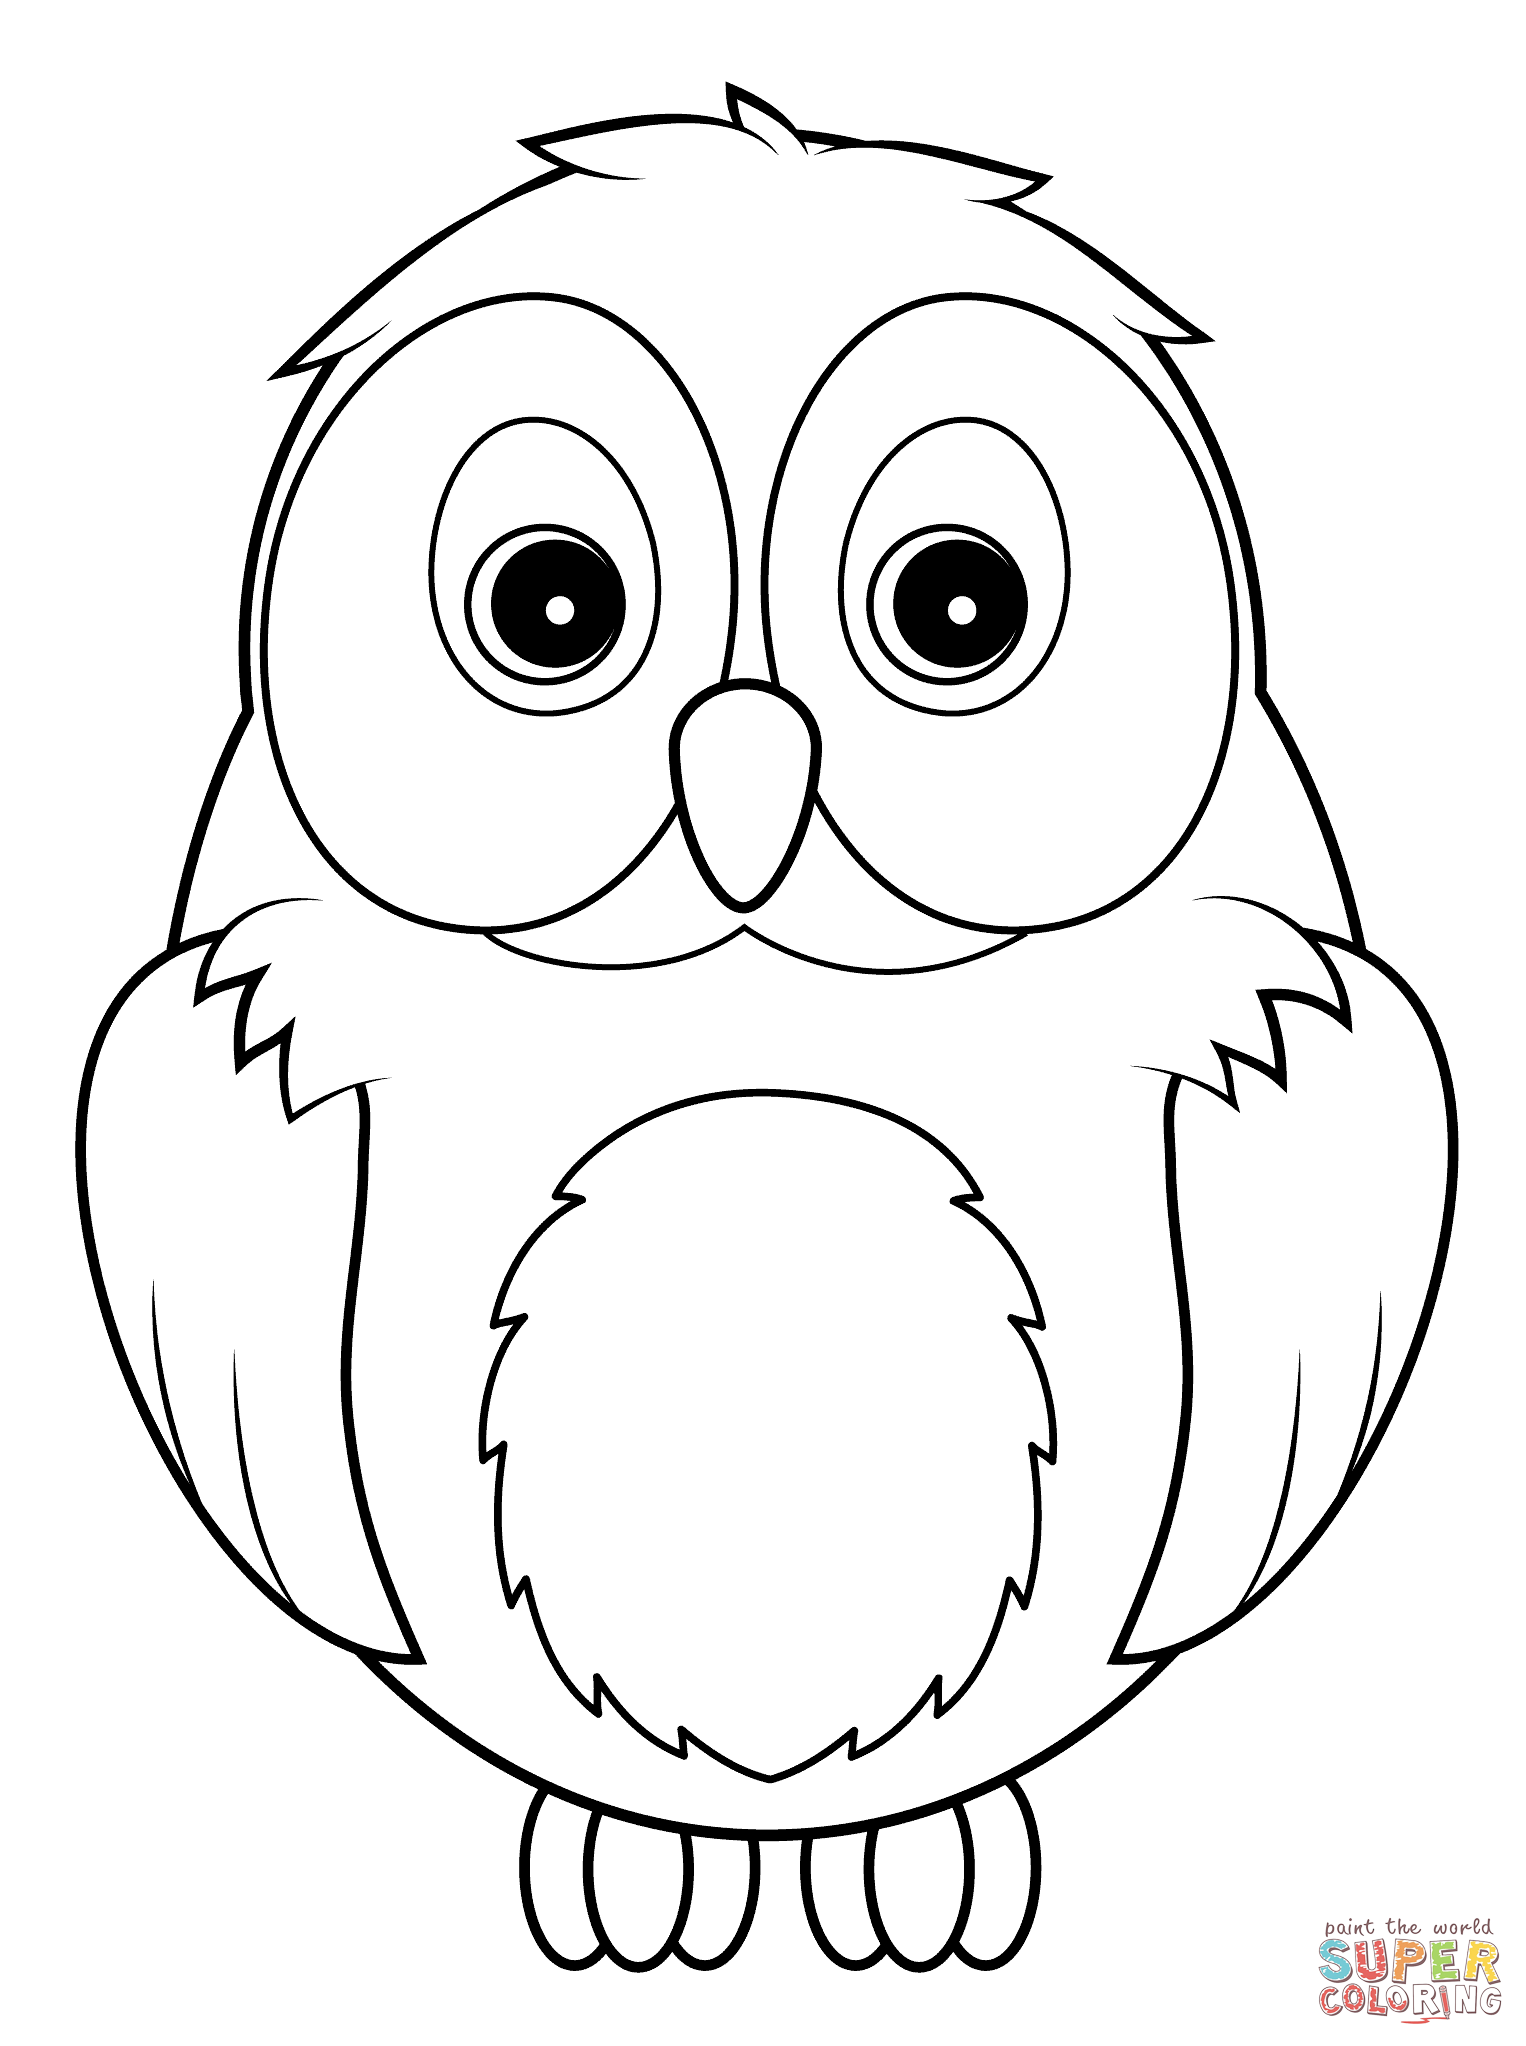 coloring picture of an owl owl coloring pages owl coloring pages picture coloring owl an of